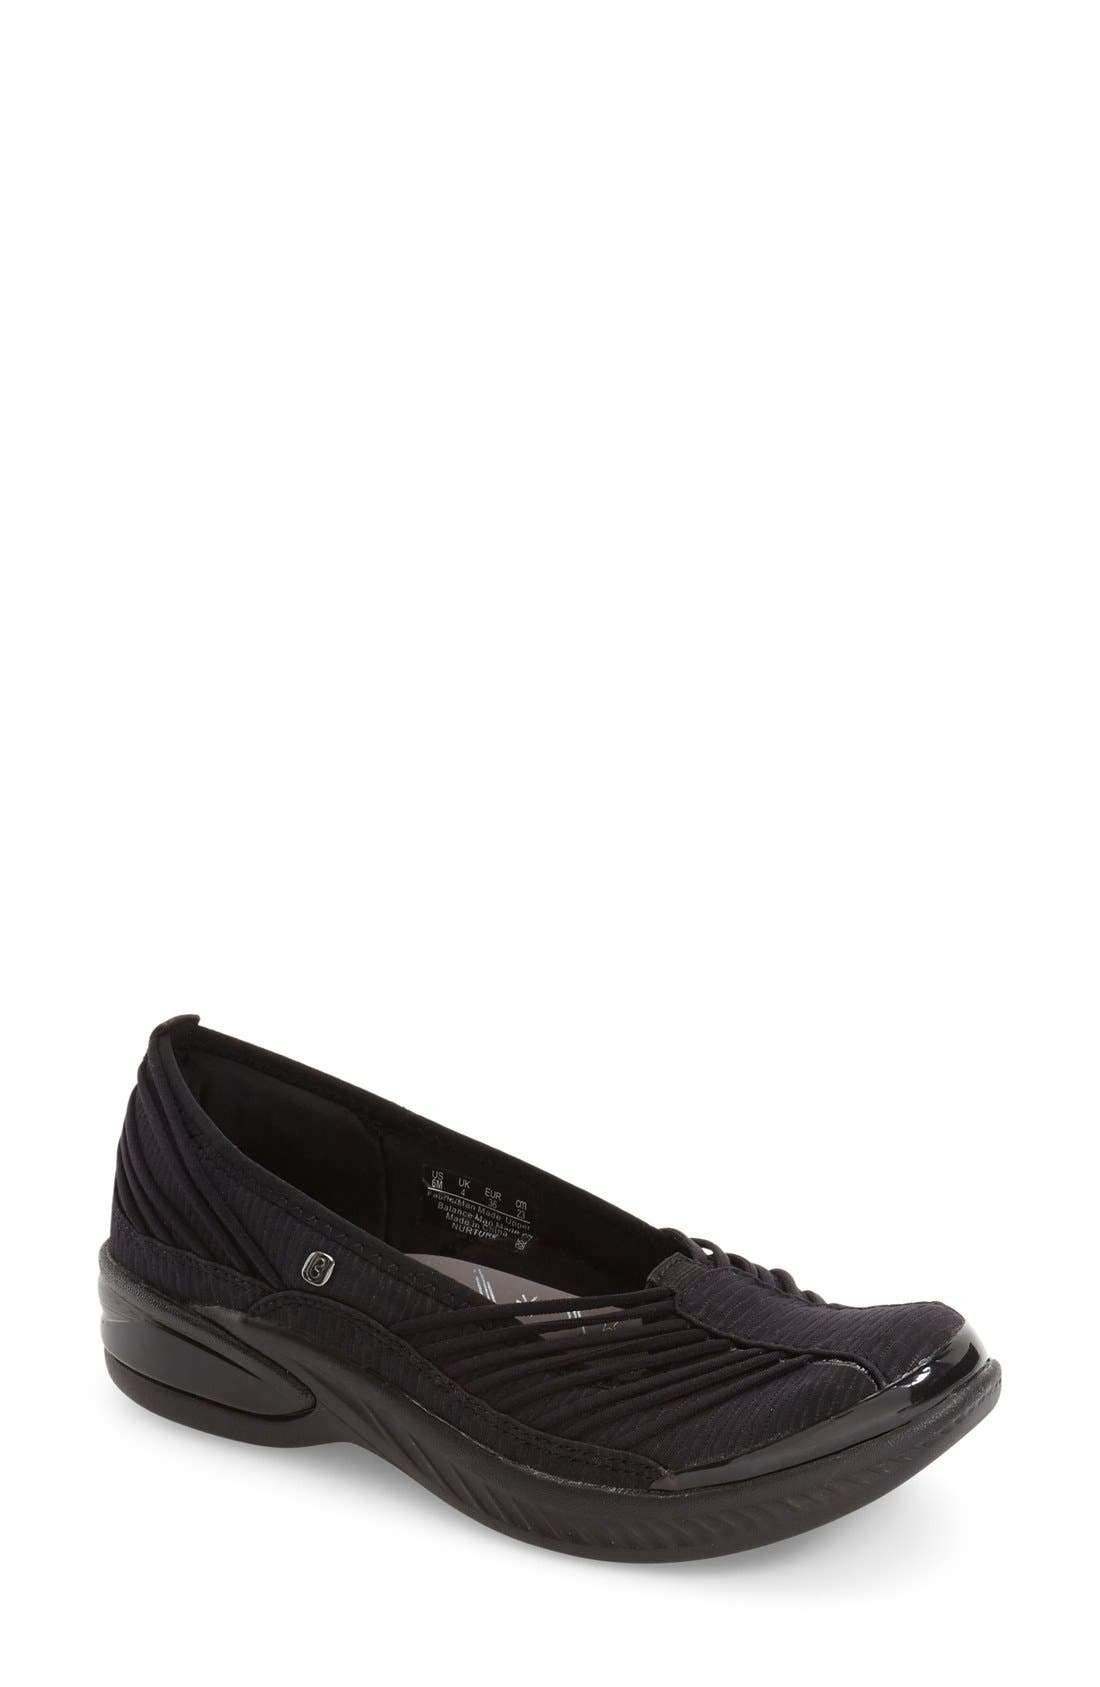 Nurture Bungee Strap Slip-On,                         Main,                         color, Black Mesh Fabric